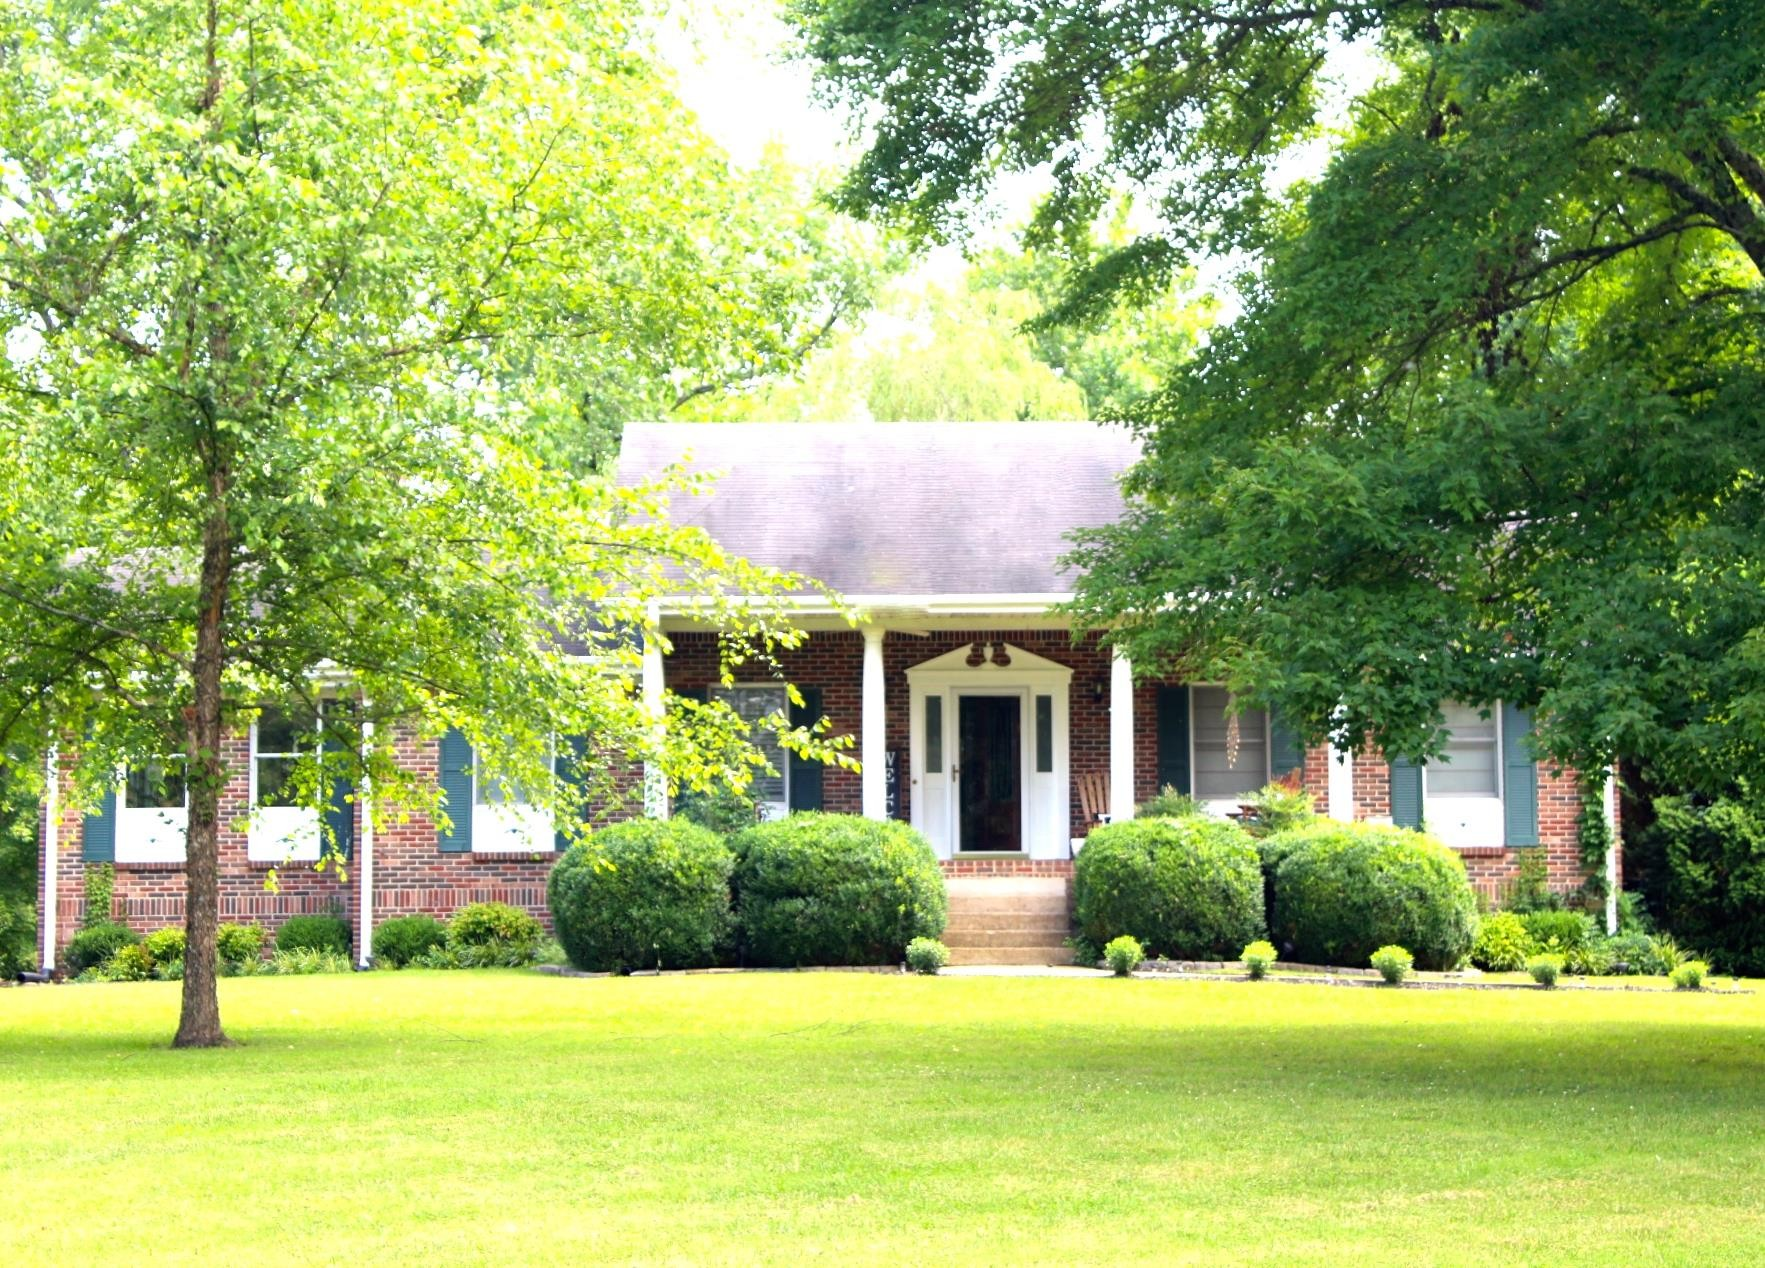 1338 Grays Bend Rd, Centerville, TN 37033 - Centerville, TN real estate listing